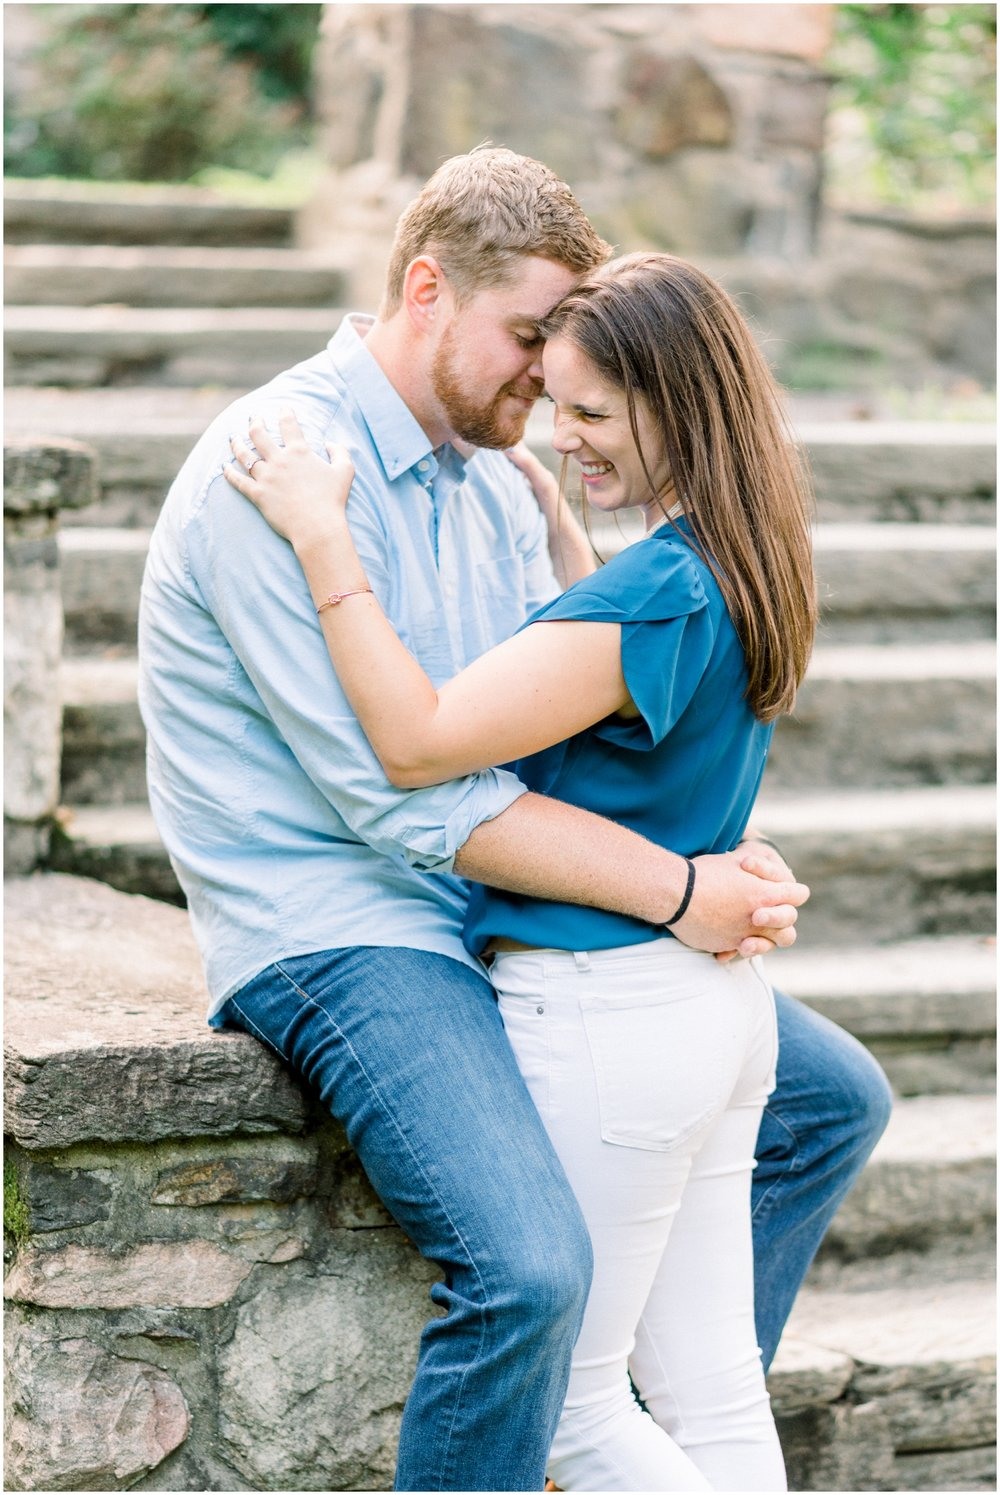 Summer Engagement Session at Hunting Hill Mansion - Krista Brackin Photography_0031.jpg